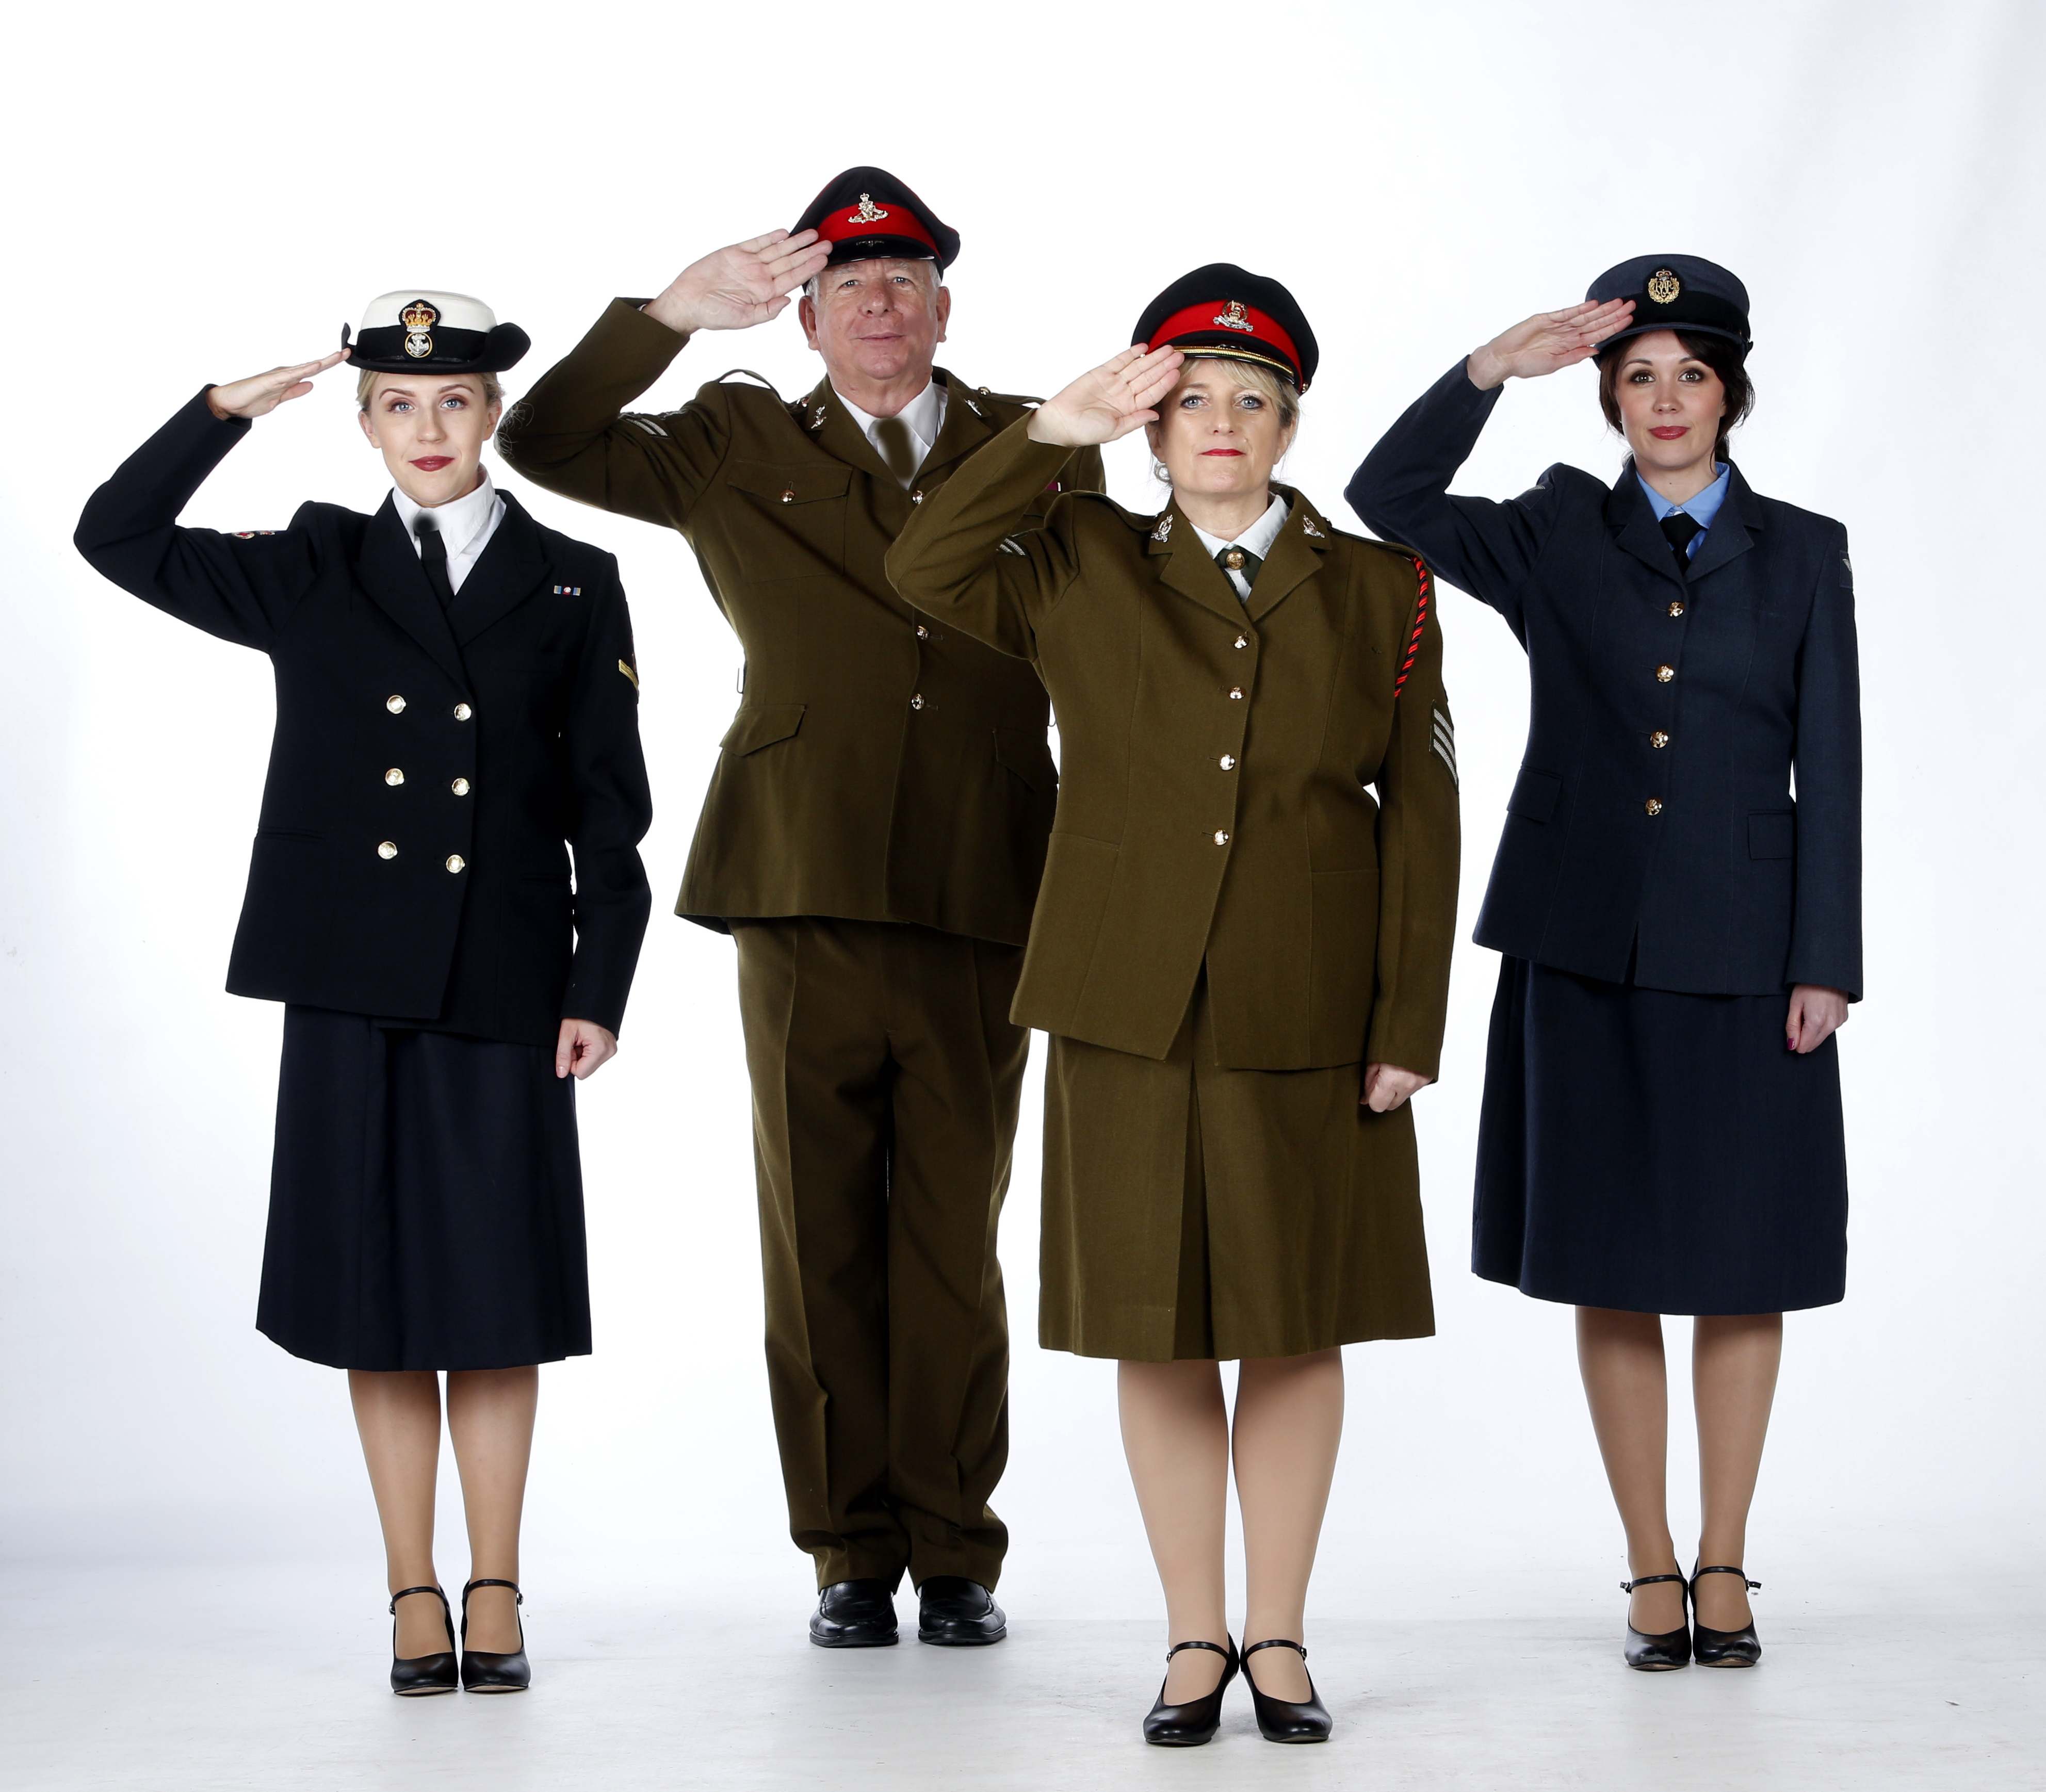 SENTIMENTAL JOURNEY celebrate the 75th Anniversary of D-Day